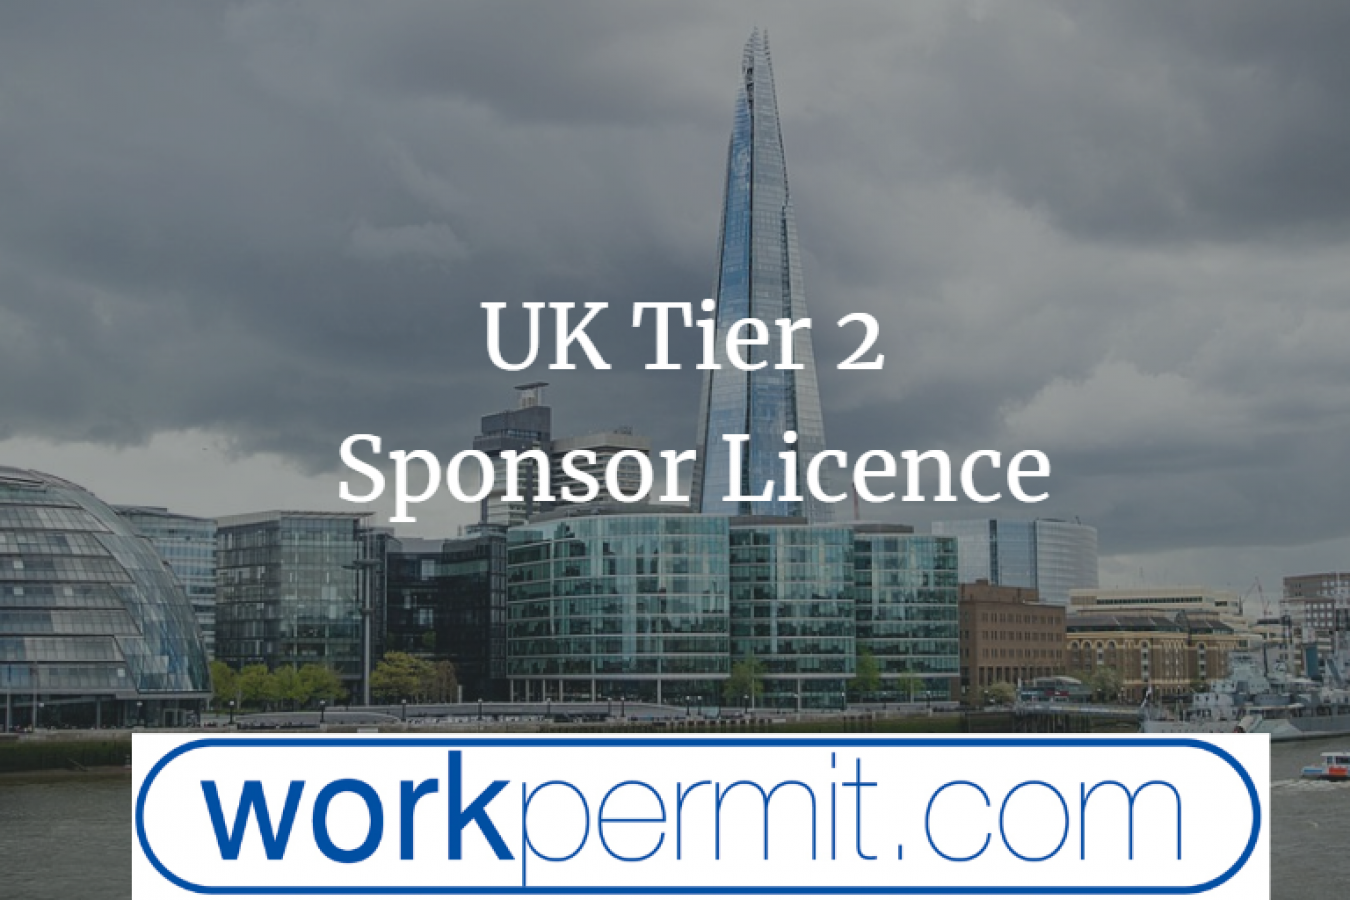 UK Tier 2 Sponsor Licence Application